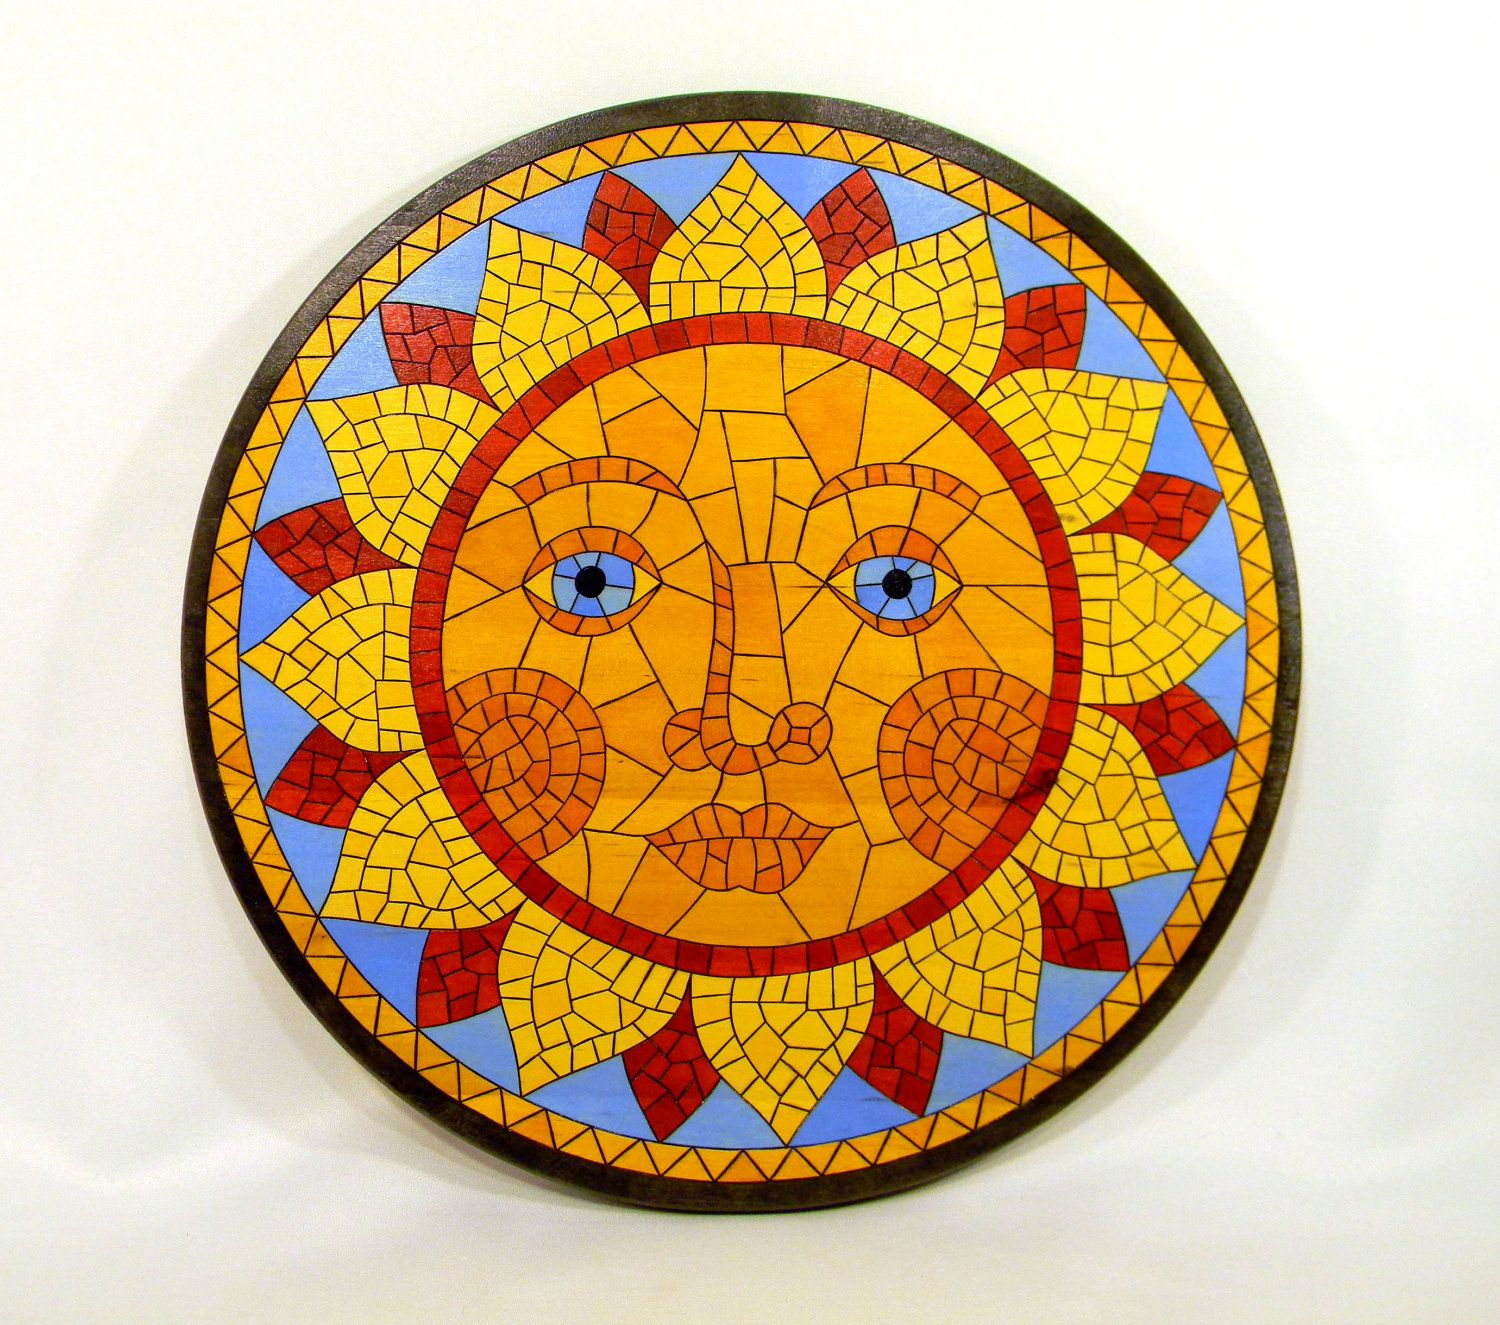 Möbel Drinnen Streichen With Makes Most Great Mosaic Sun Can The To With You 1 A